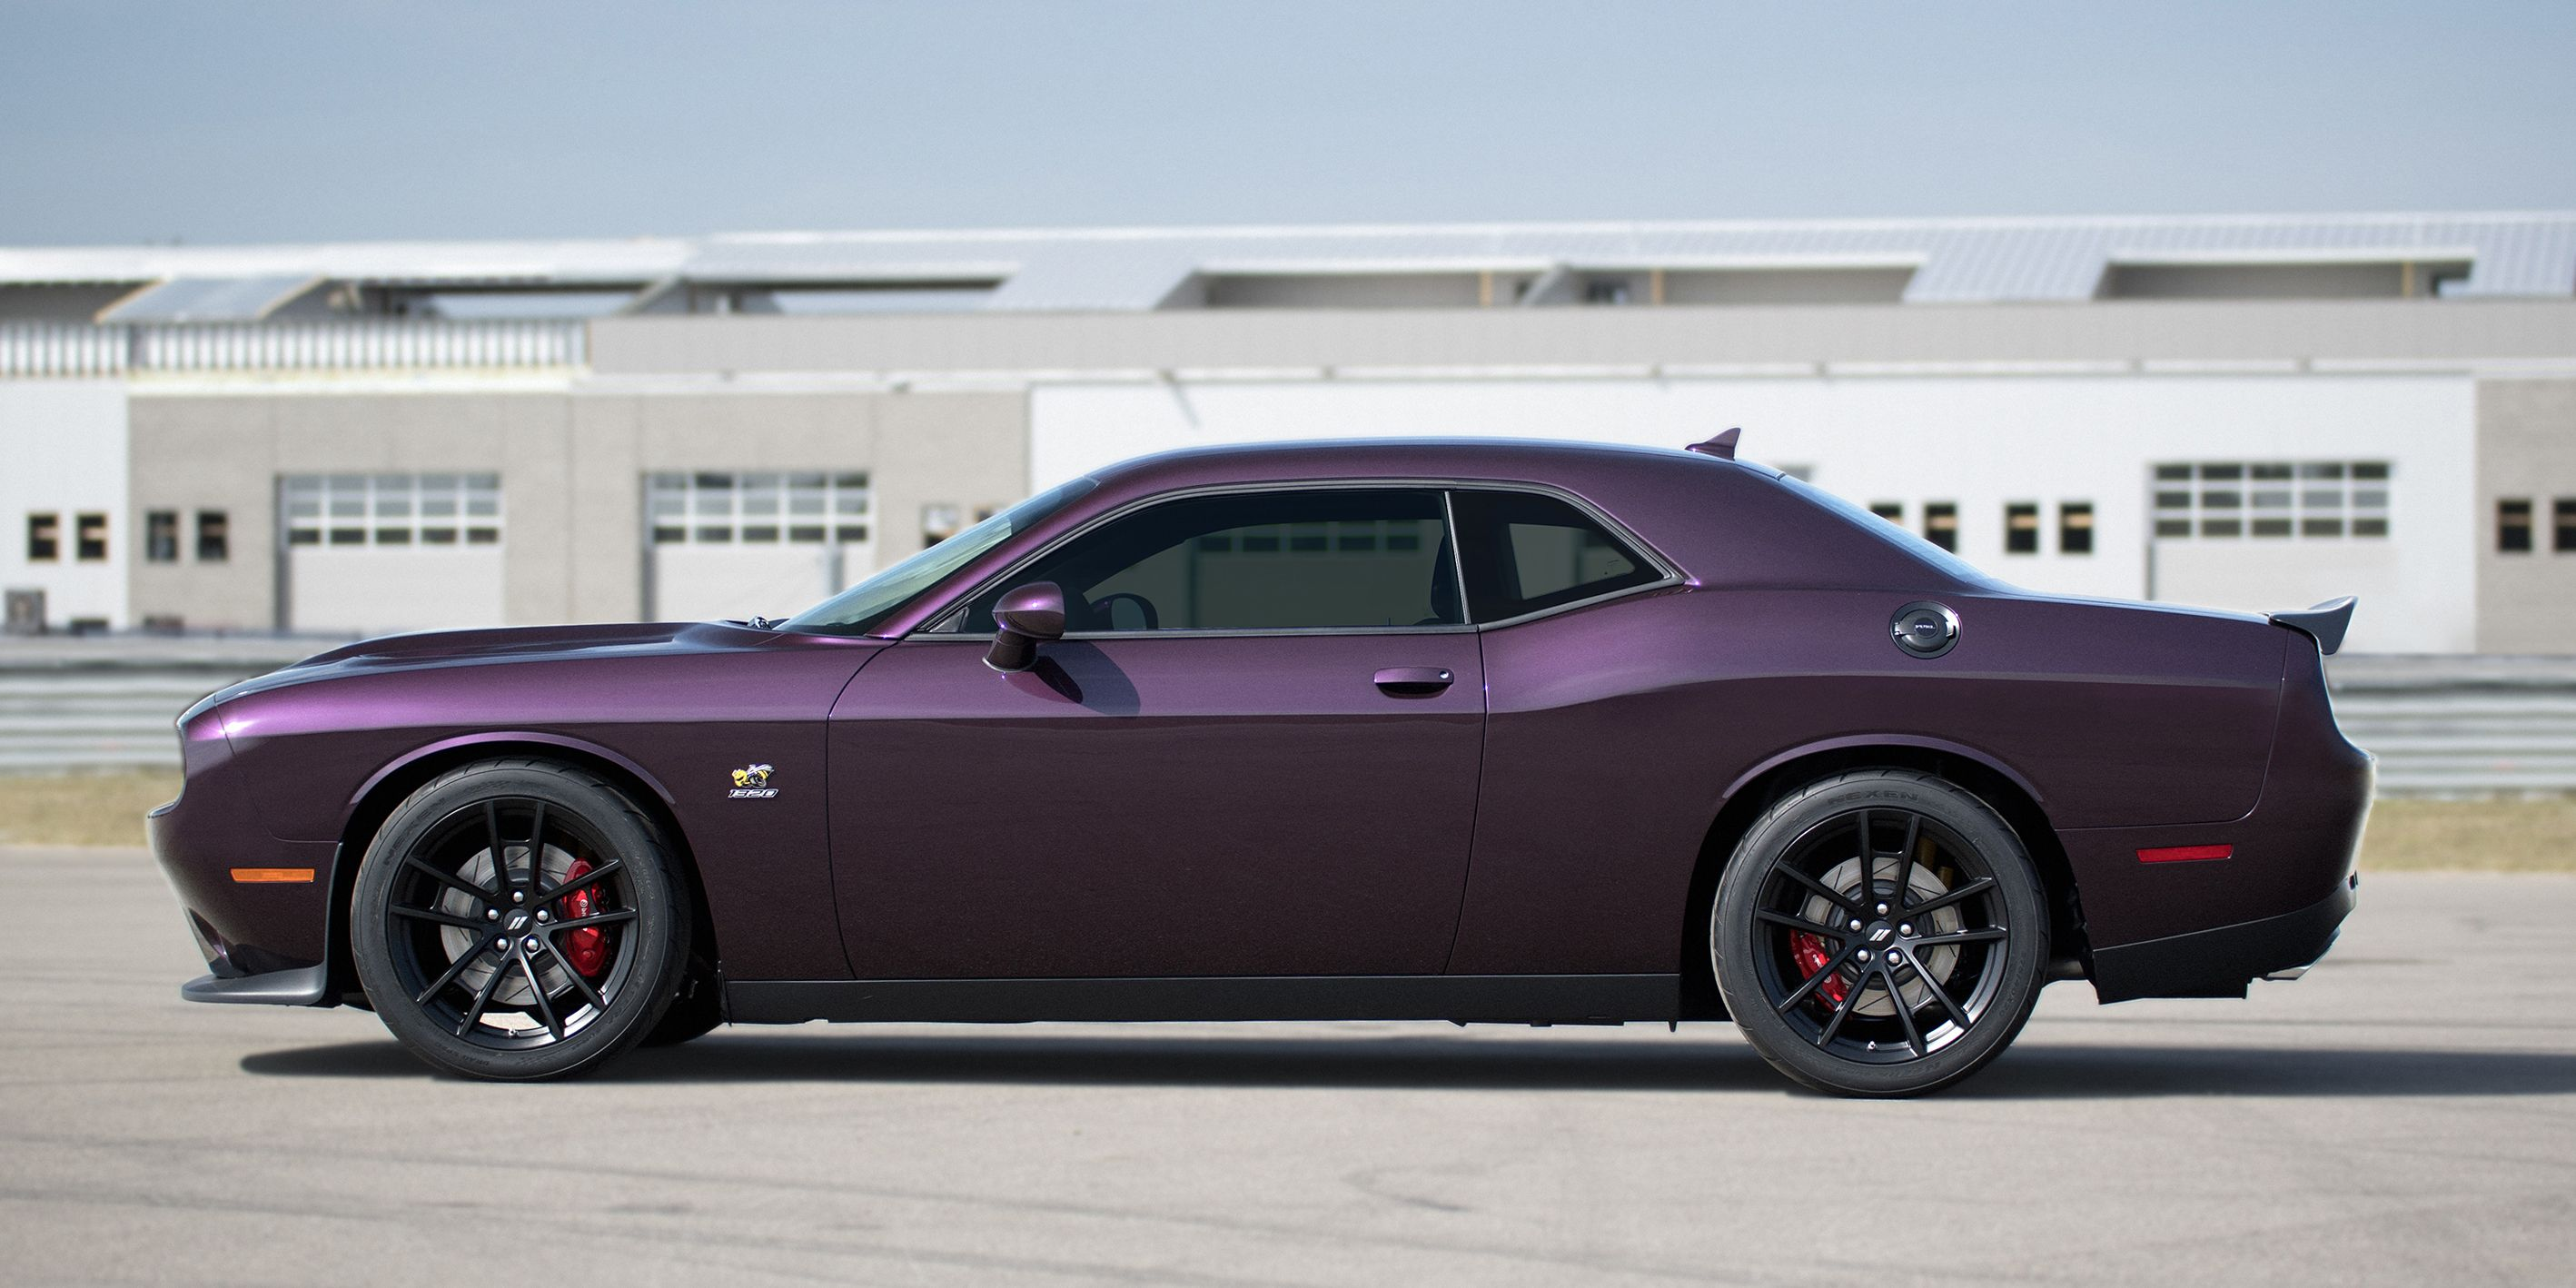 The Dodge Challenger R T Scat Pack 1320 Takes A Page From